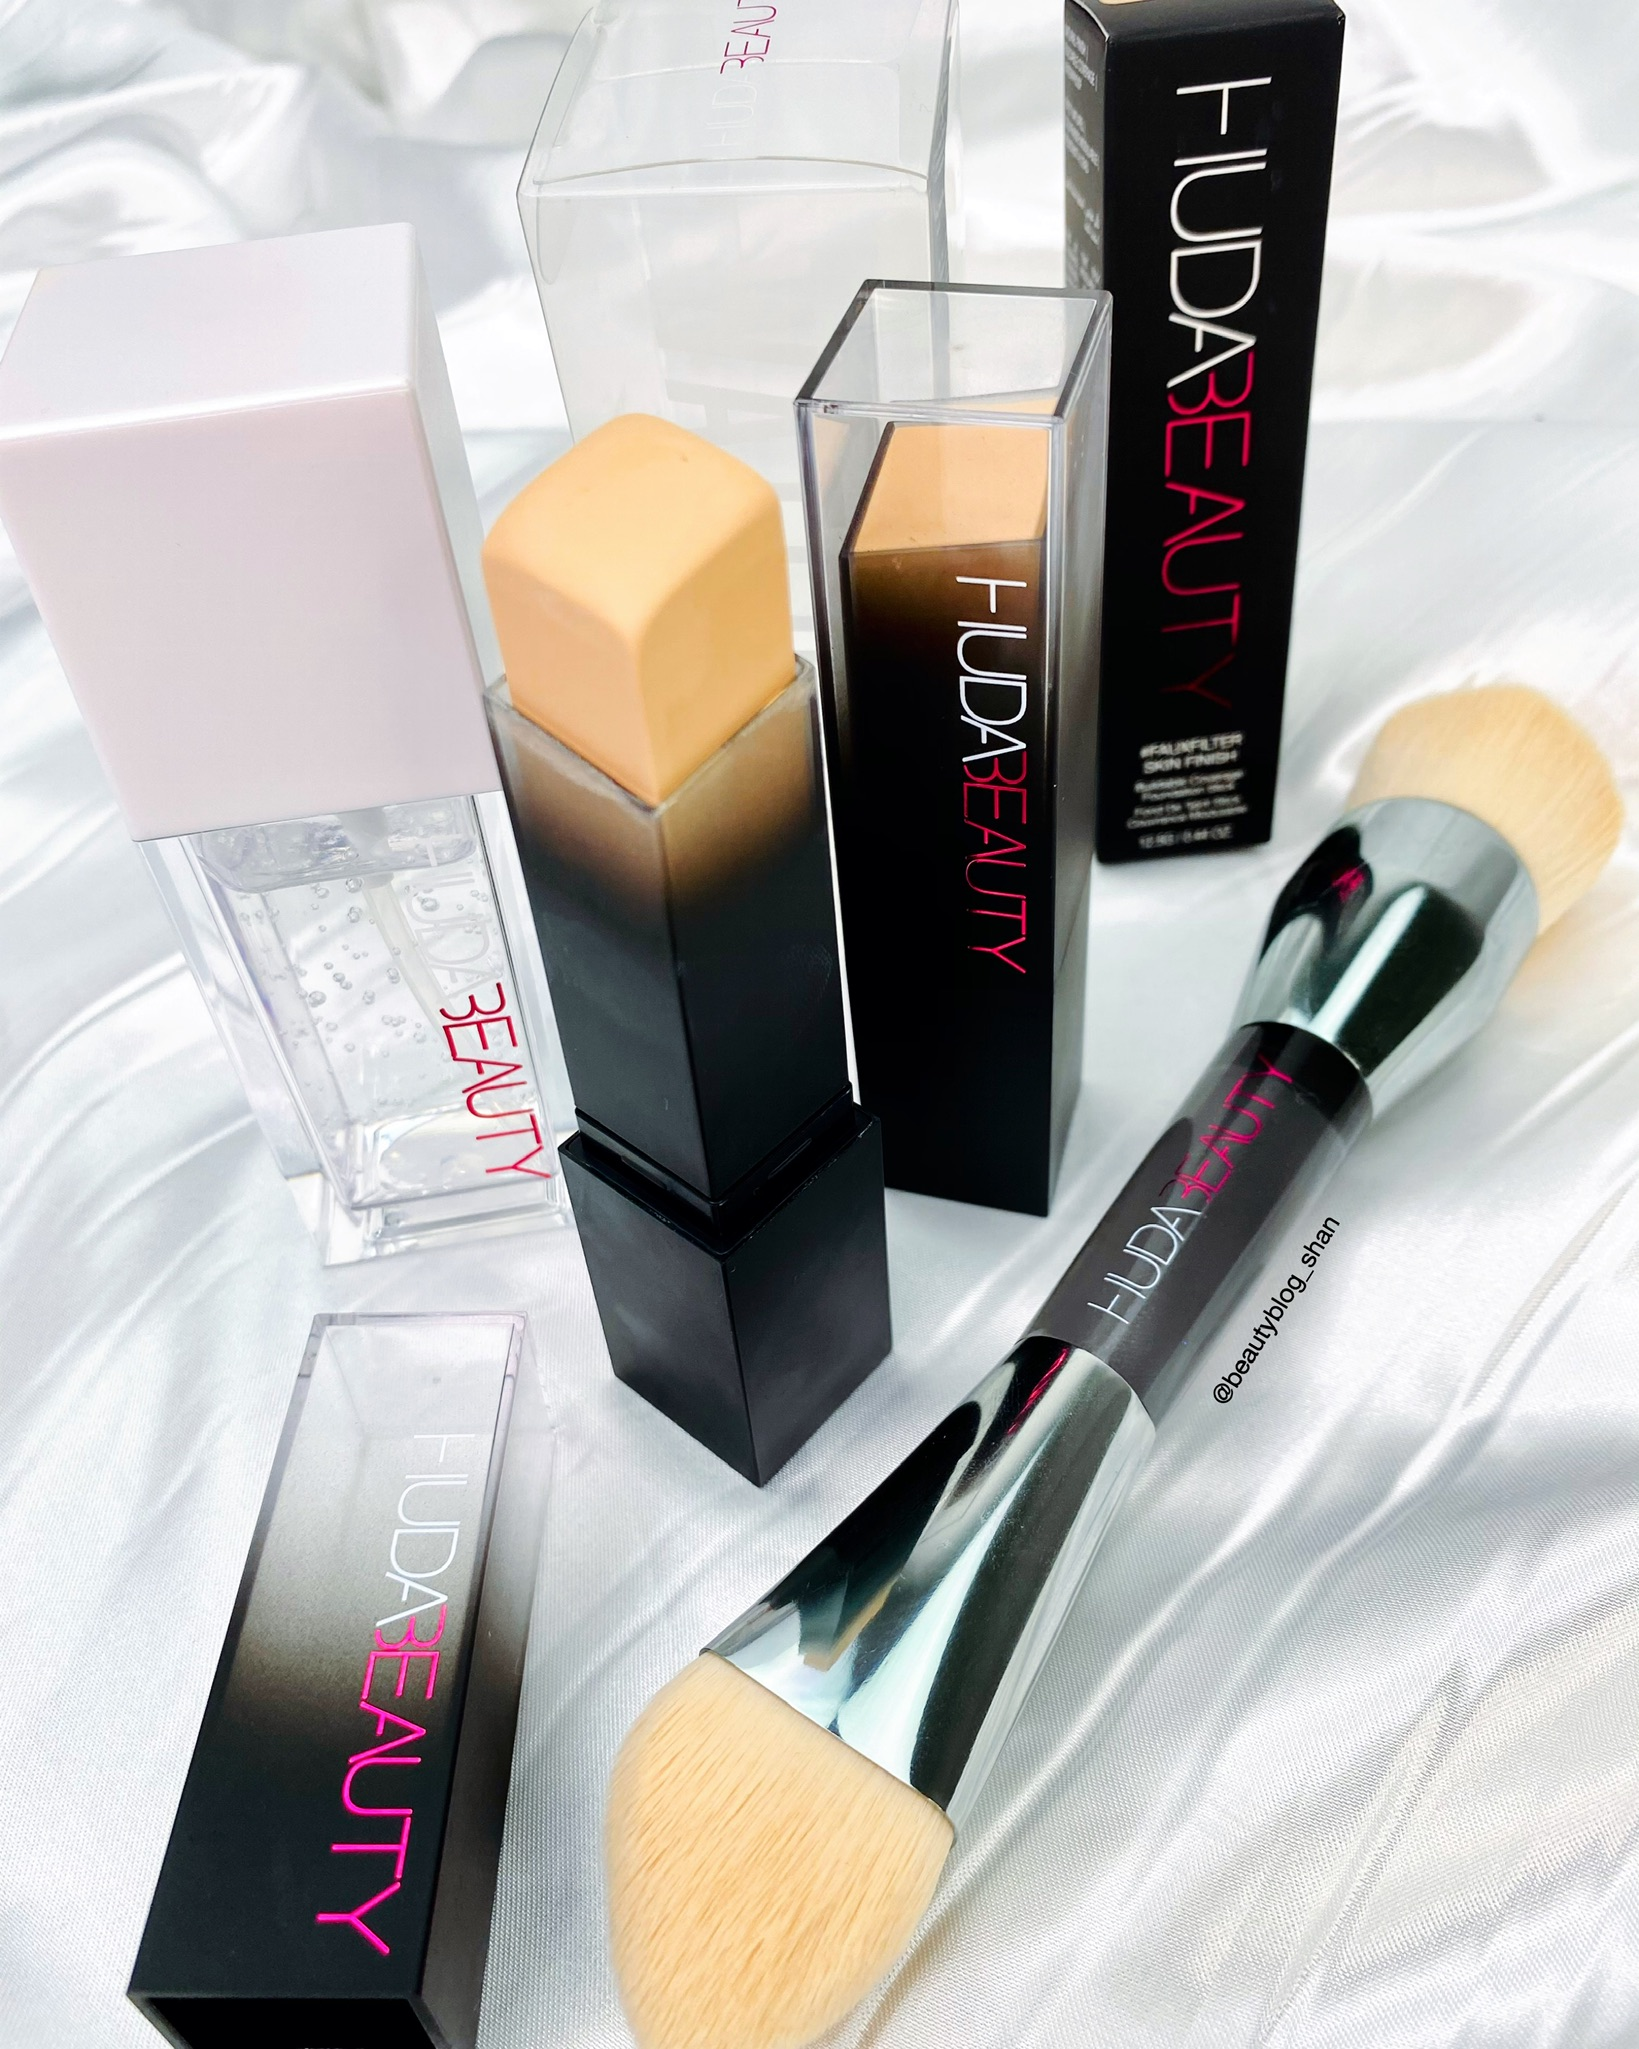 new huda beauty complexion products